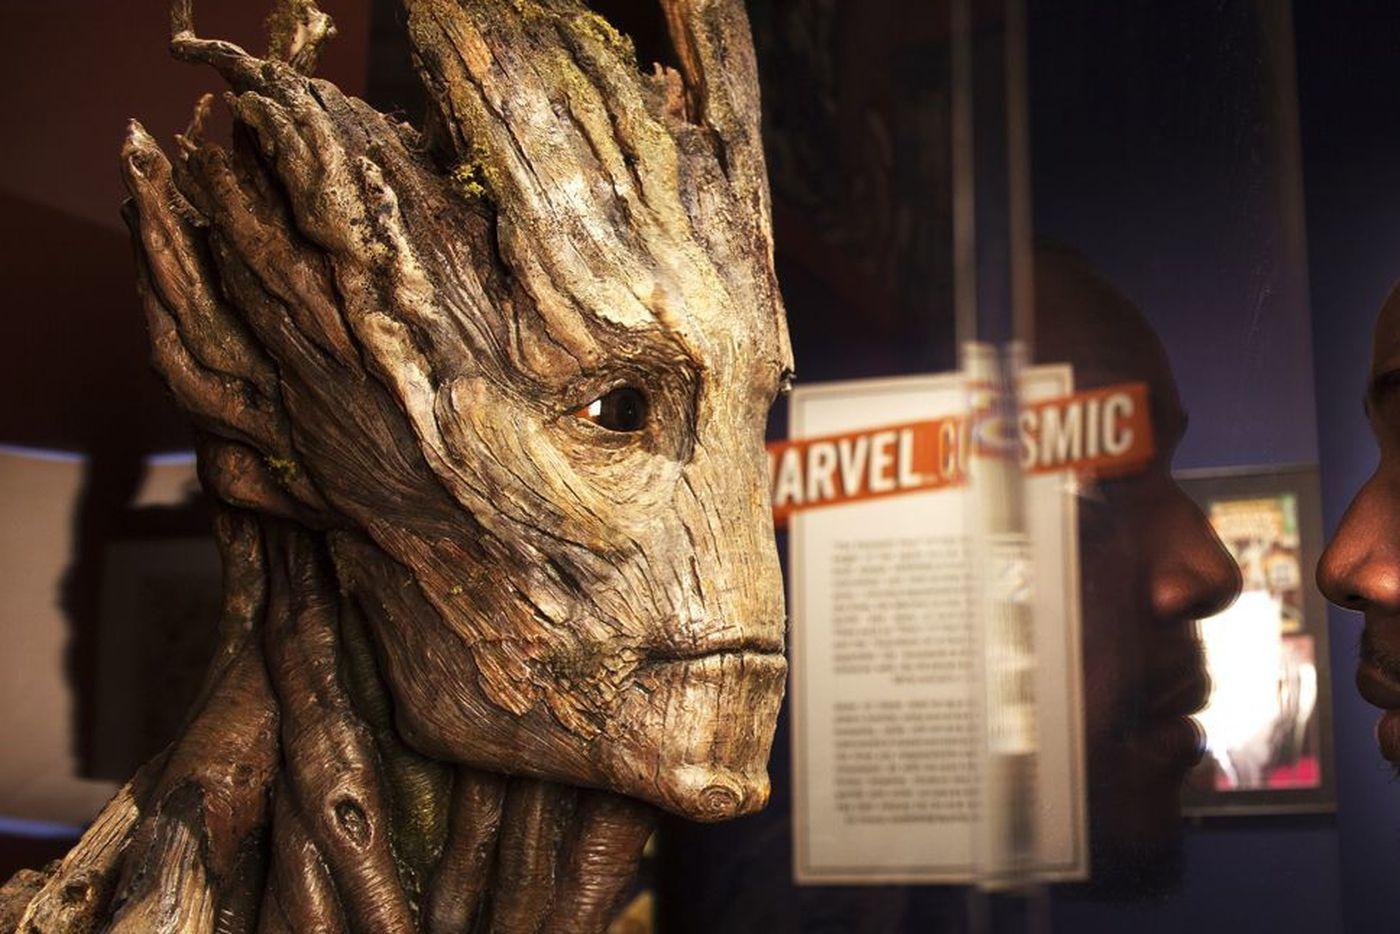 Groot is voiced by Vin Diesel.